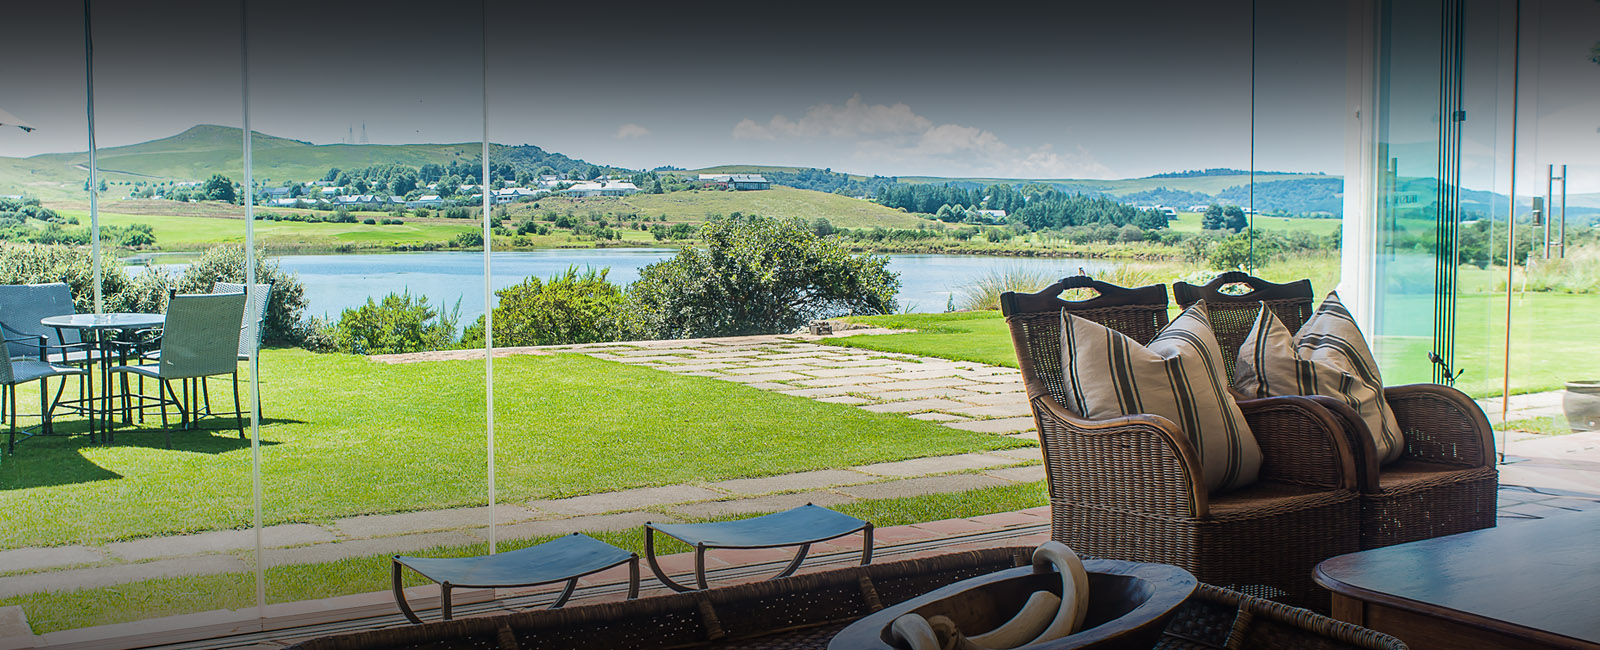 gowrie-farm-golf-estate-kzn-midlands-housing-golfing-dams-drakensberg-south-africa